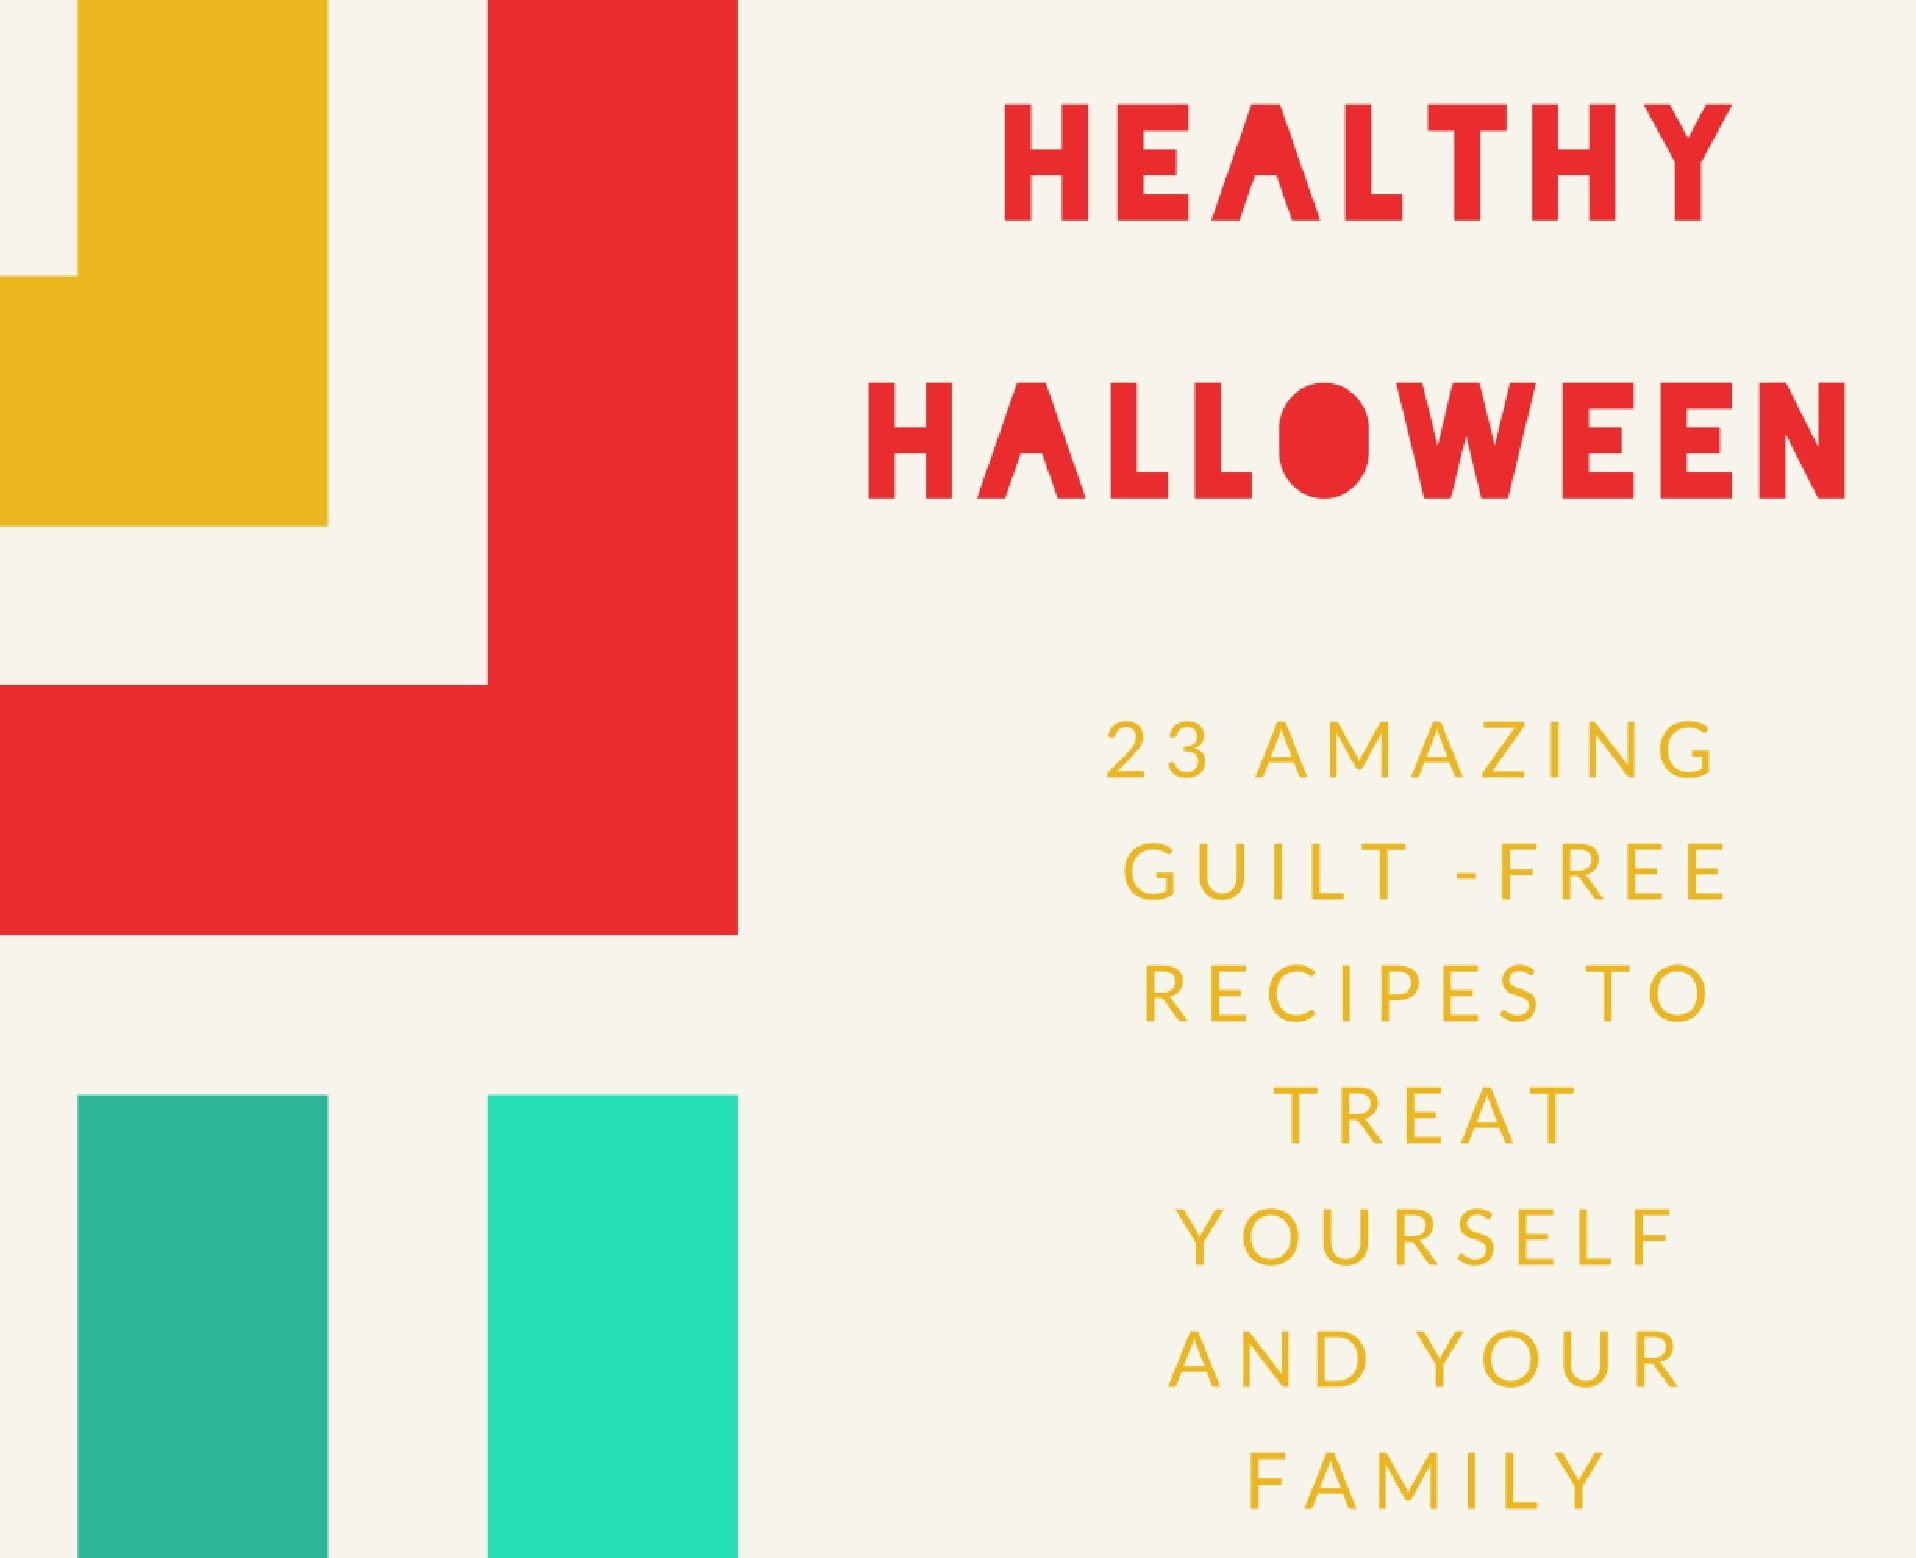 A free cookbook filled with 23 treats .... - You'll feel awesome feeding your family AND your face.